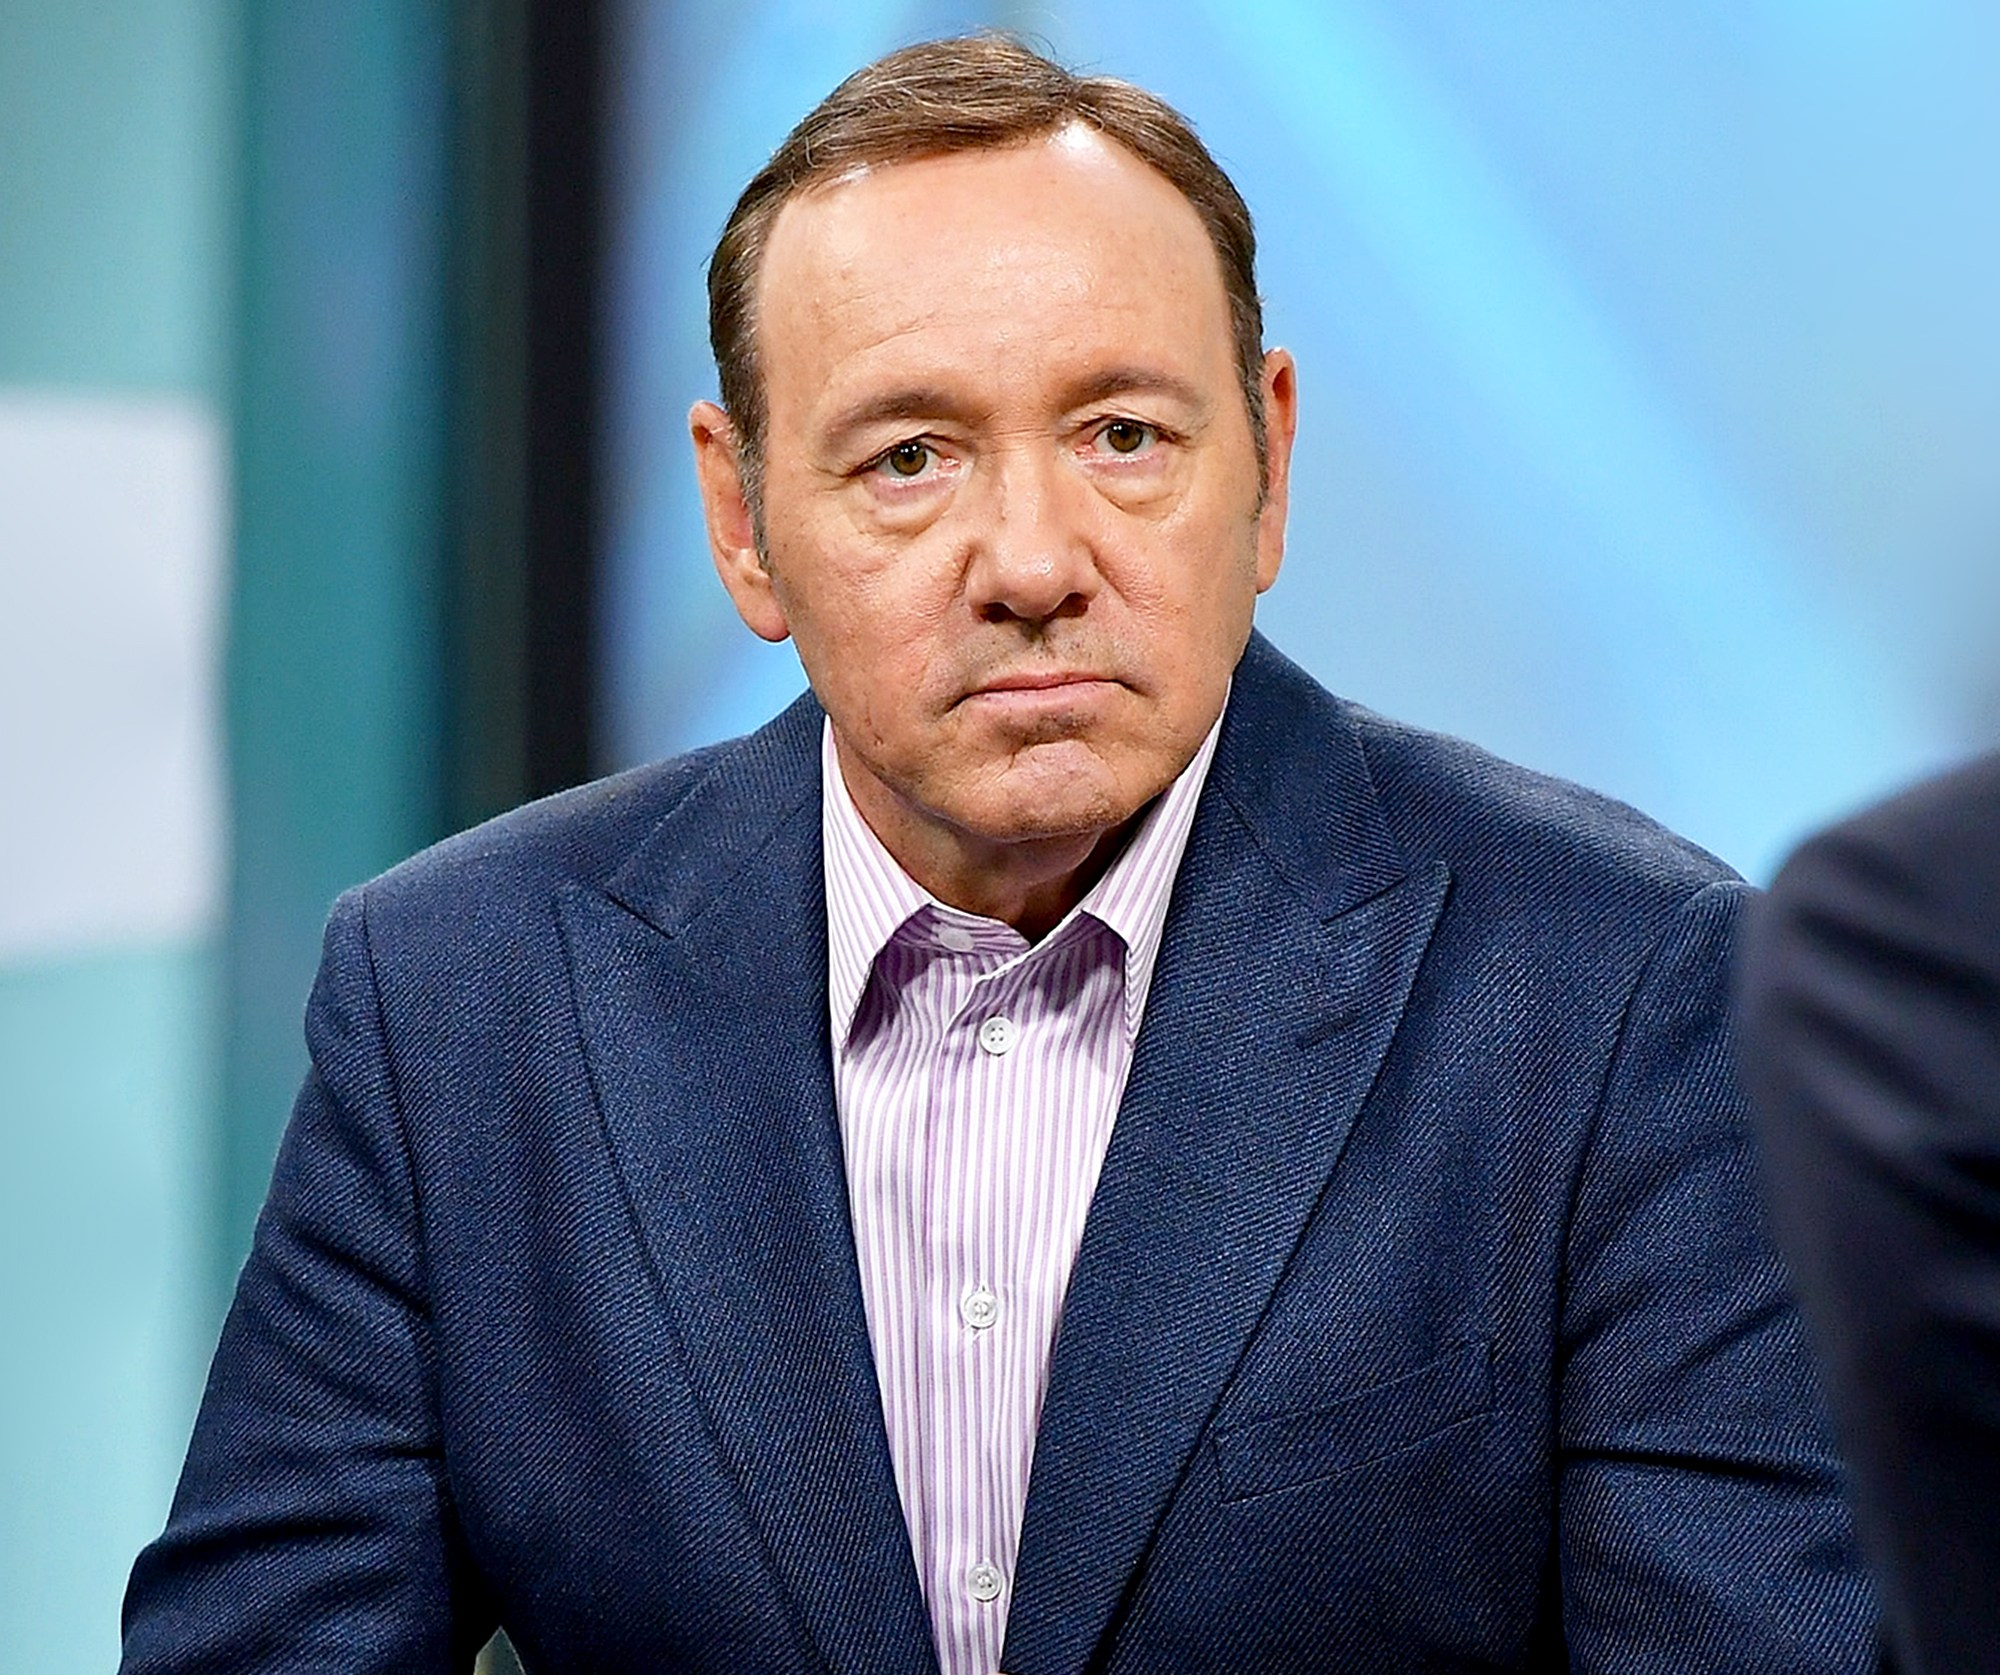 Kevin Spacey visits the Build Series at Build Studio in New York City.